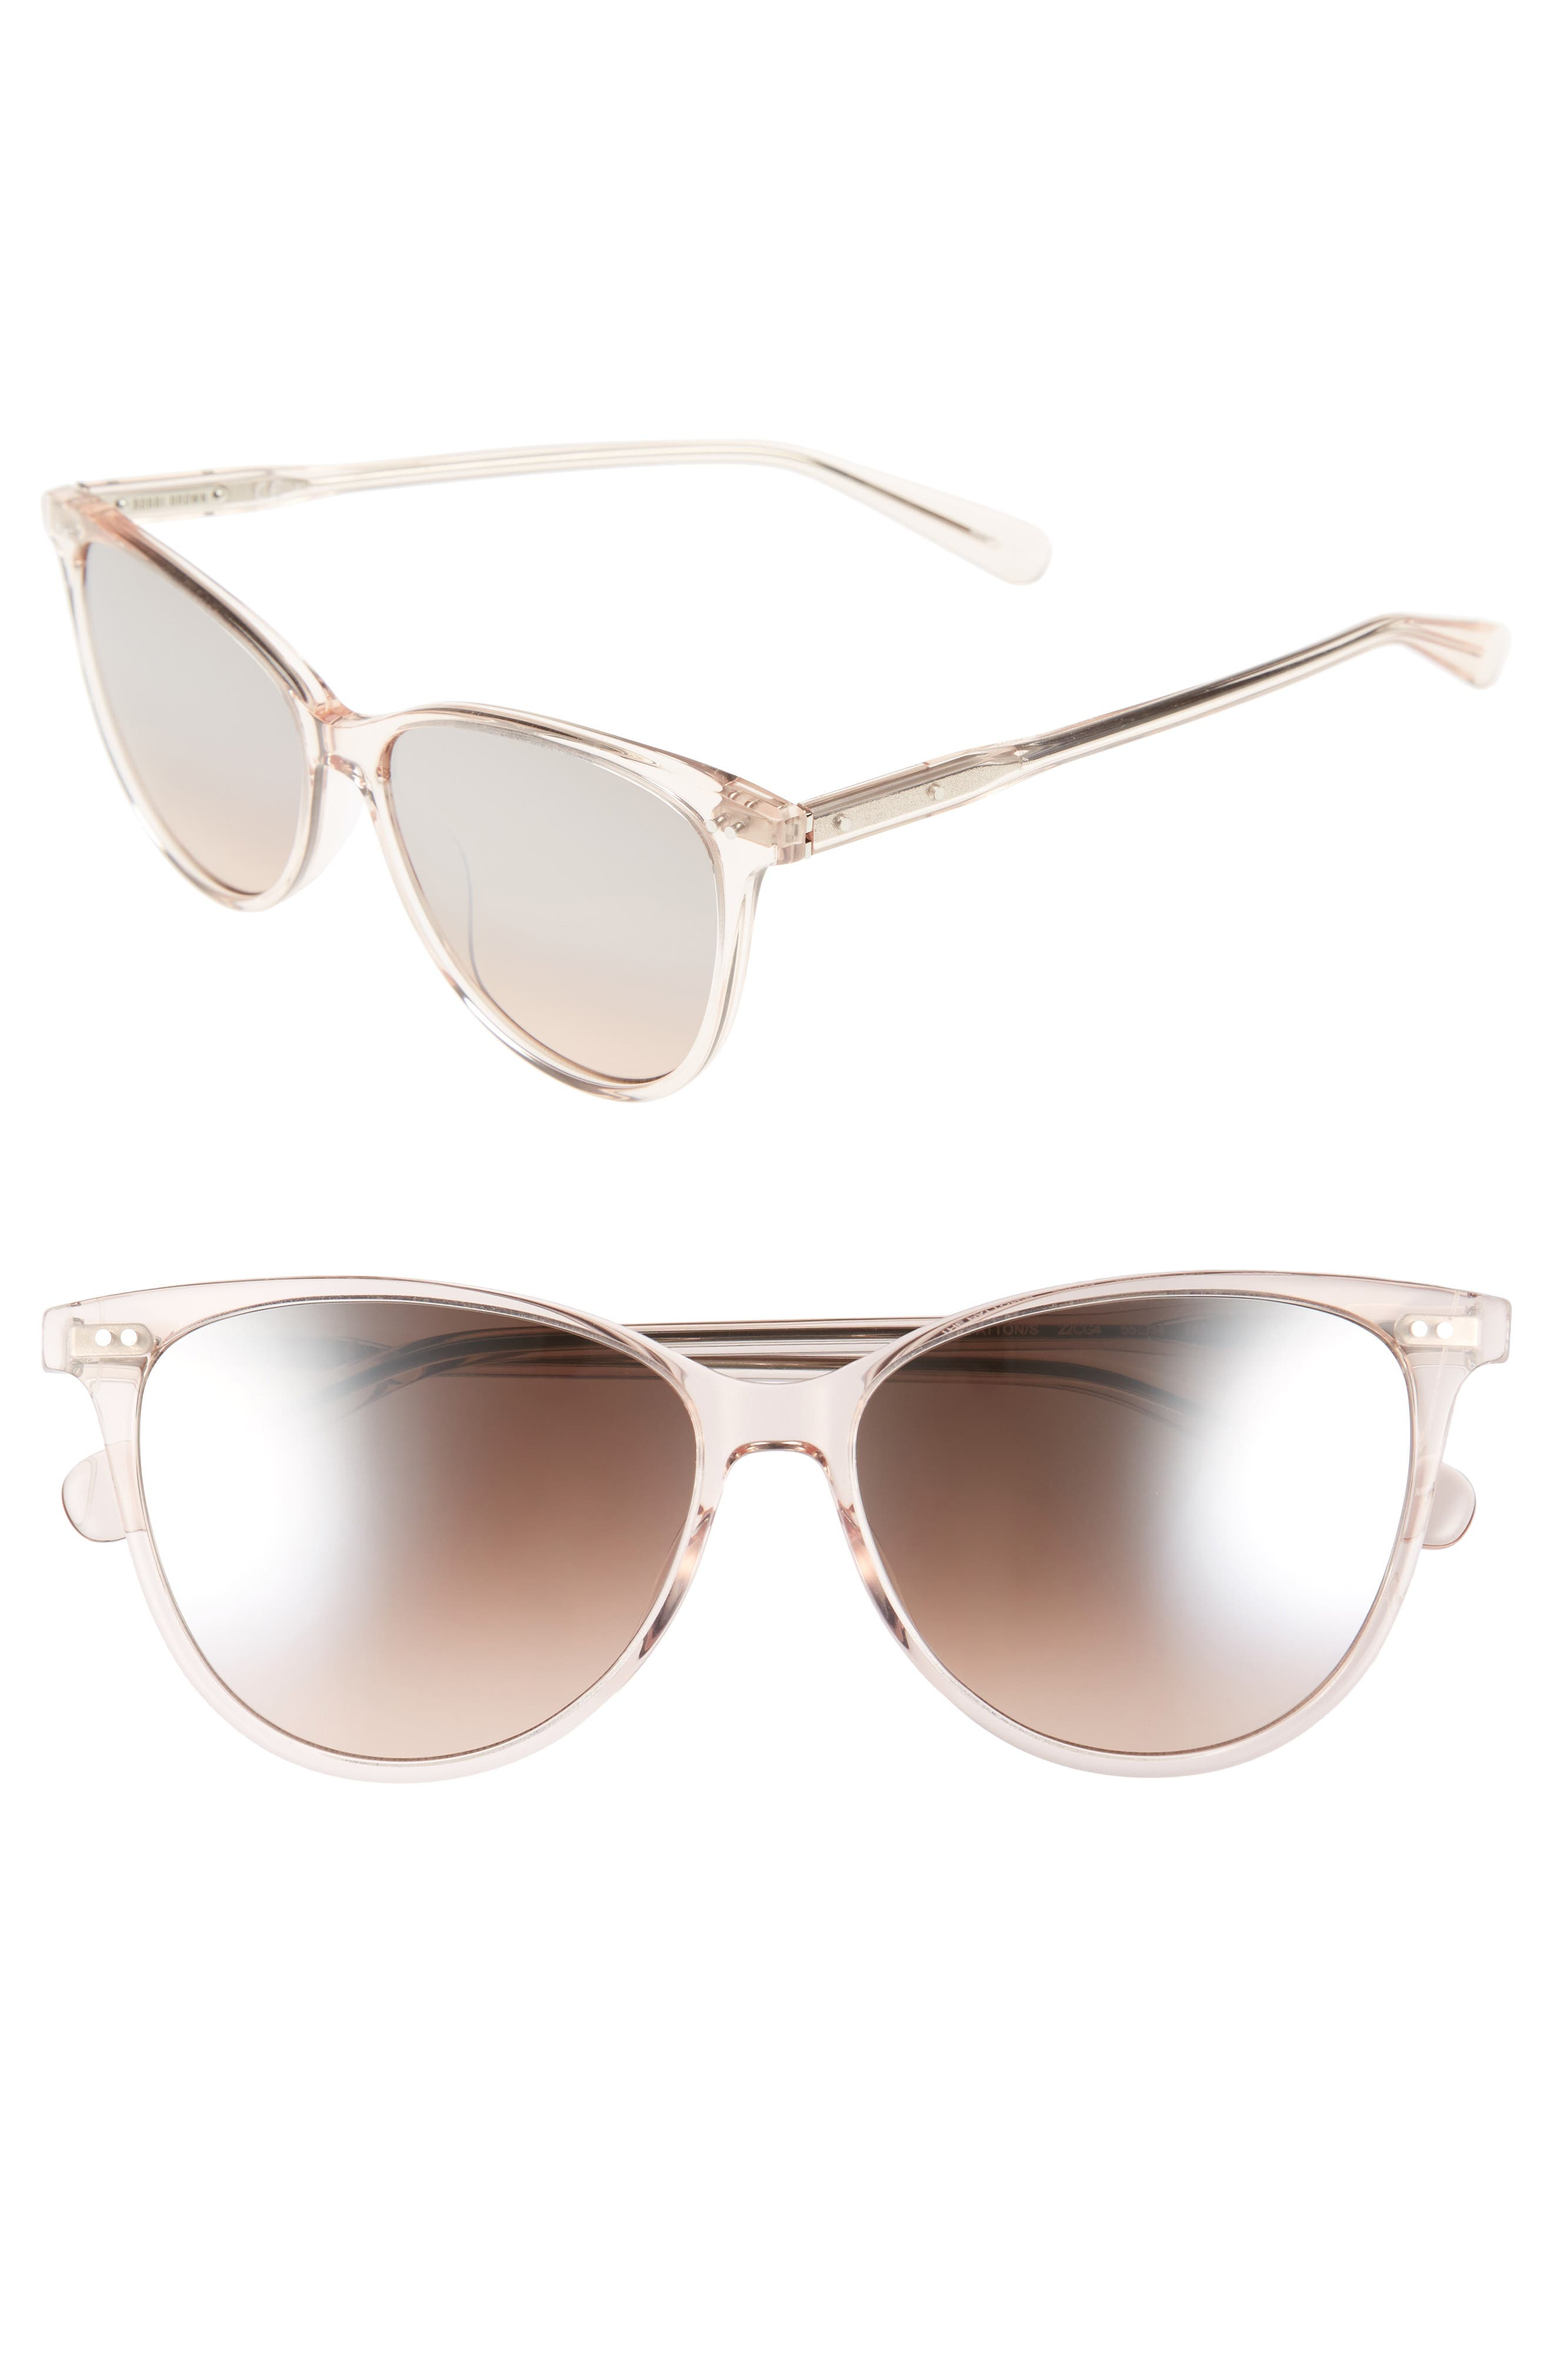 Alternate Image 1 Selected - Bobbi Brown The Patton 55mm Gradient Cat Eye Sunglasses